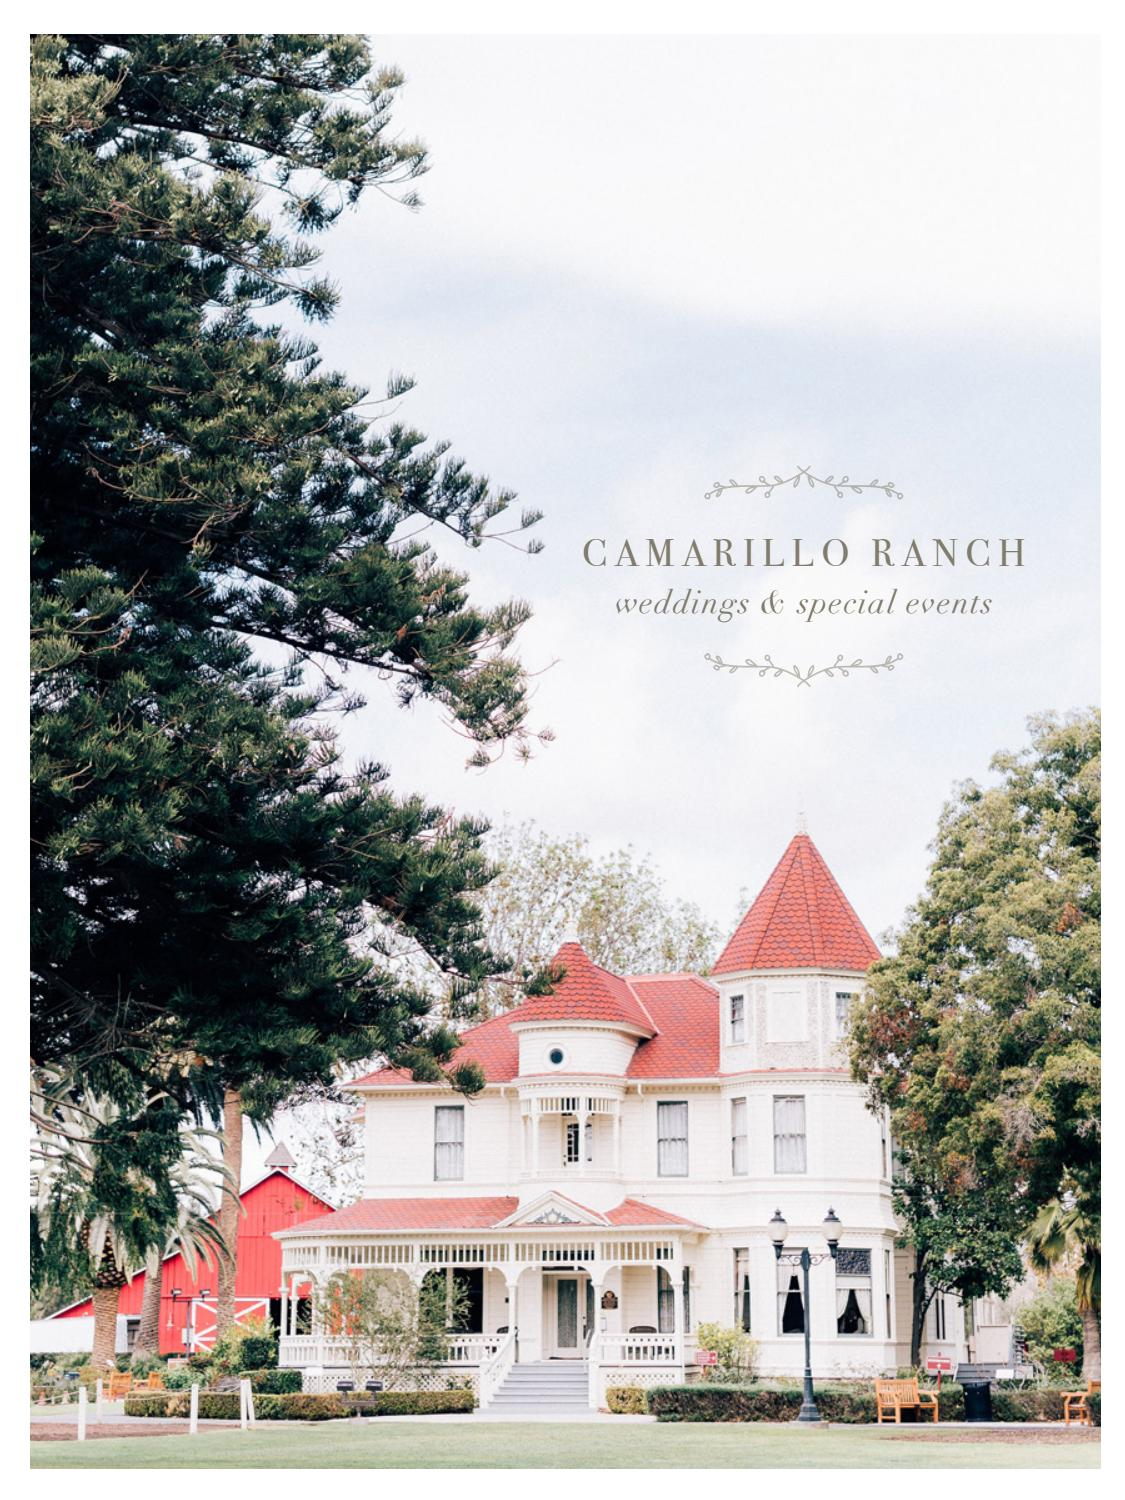 Camarillo Ranch Weddings Special Events Brochure By Meier Publishing Issuu